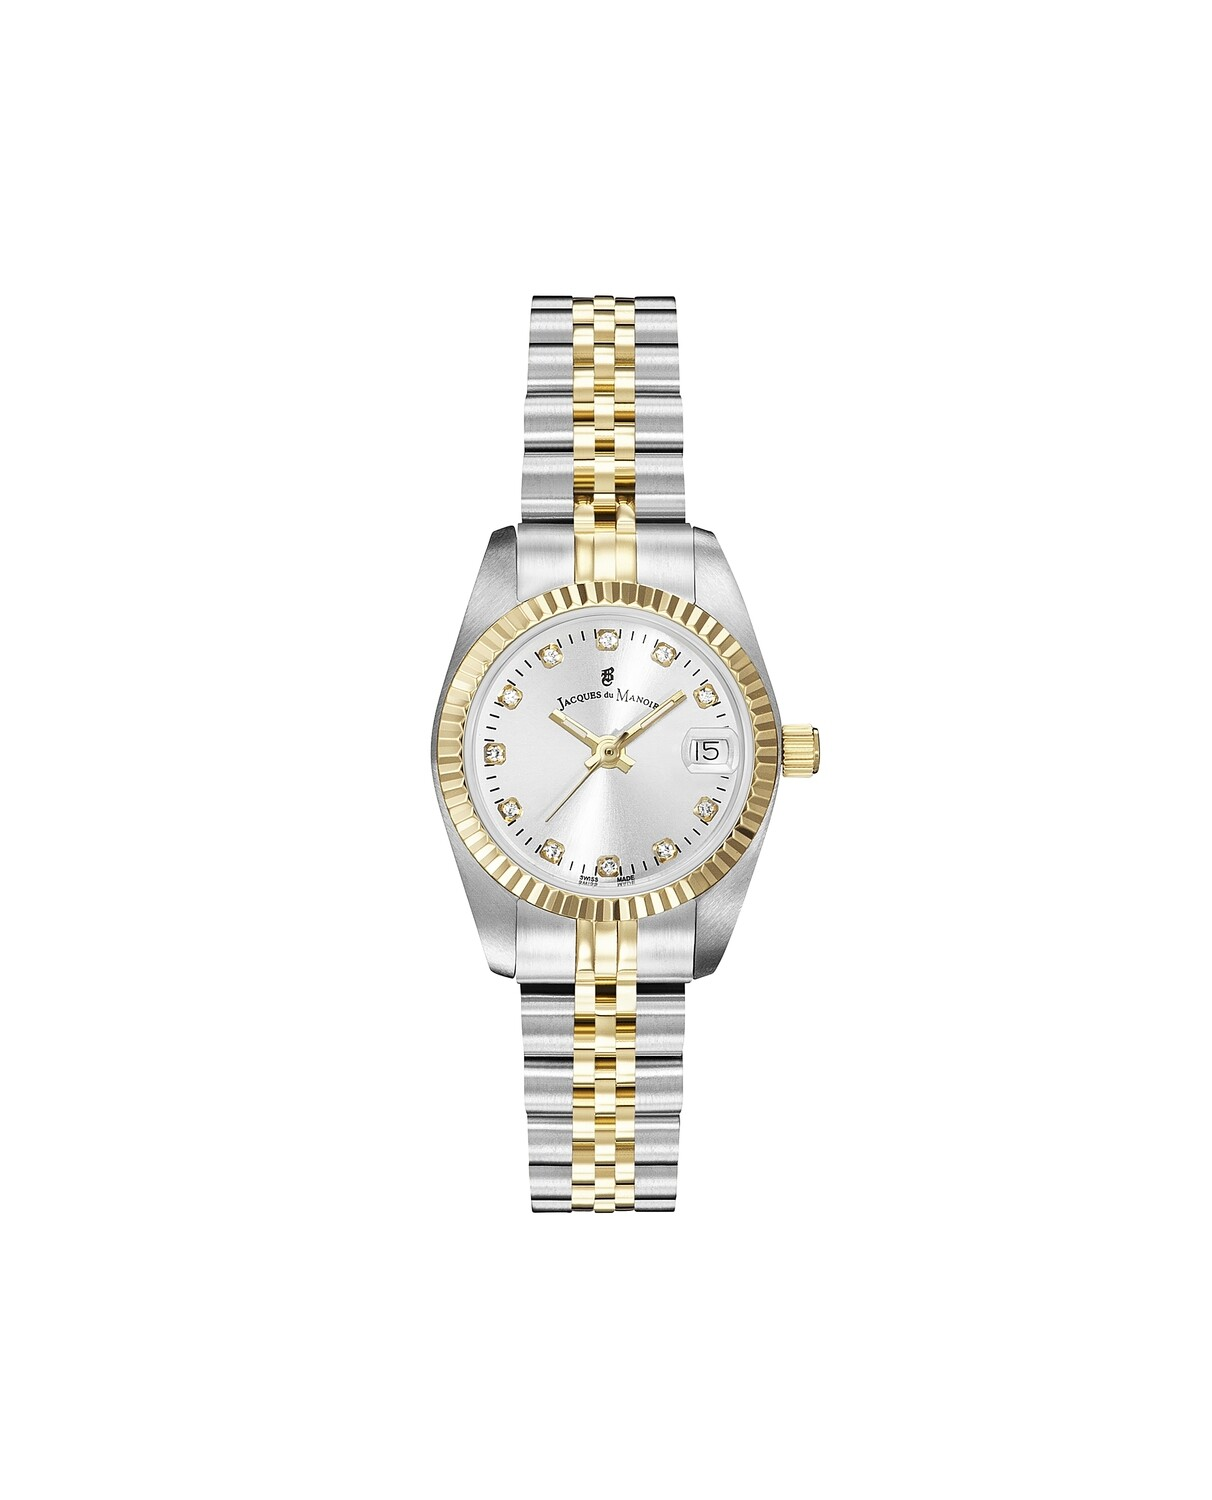 nspiration SS IPGold Two Tone case, SILVER Dial, SS IPGold Two Tone Bracelet, 26.0 mm